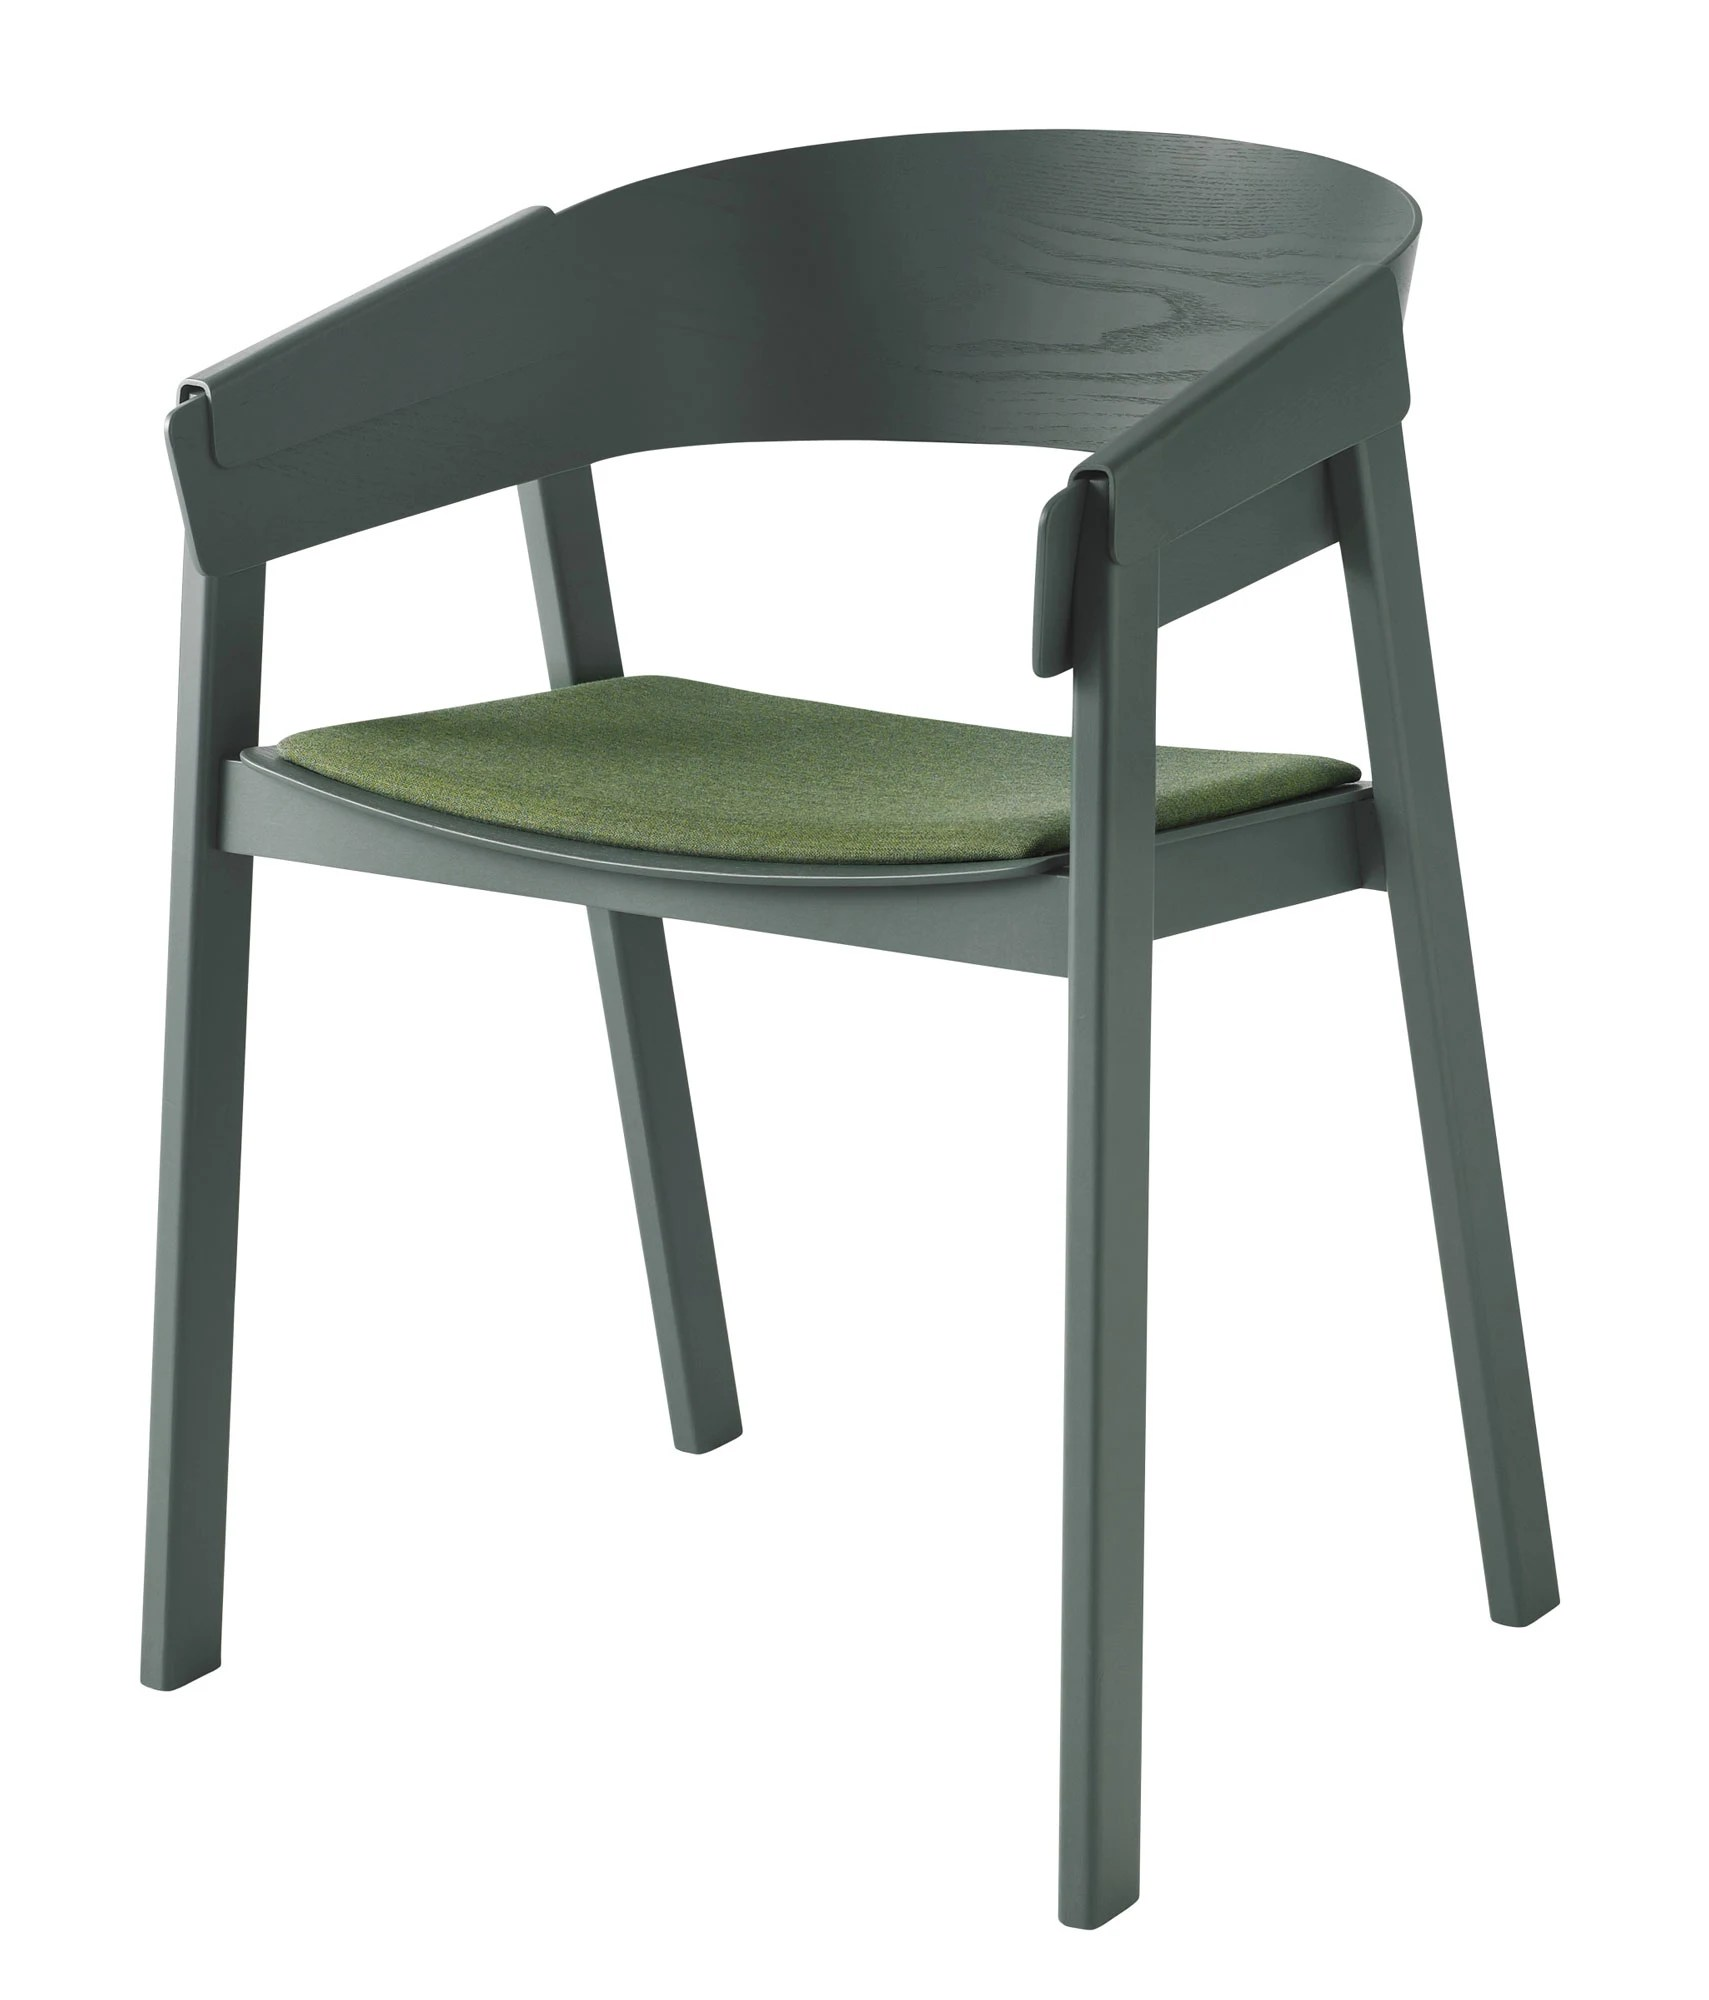 Green Upholstered Chair Muuto Cover Upholstered Chair